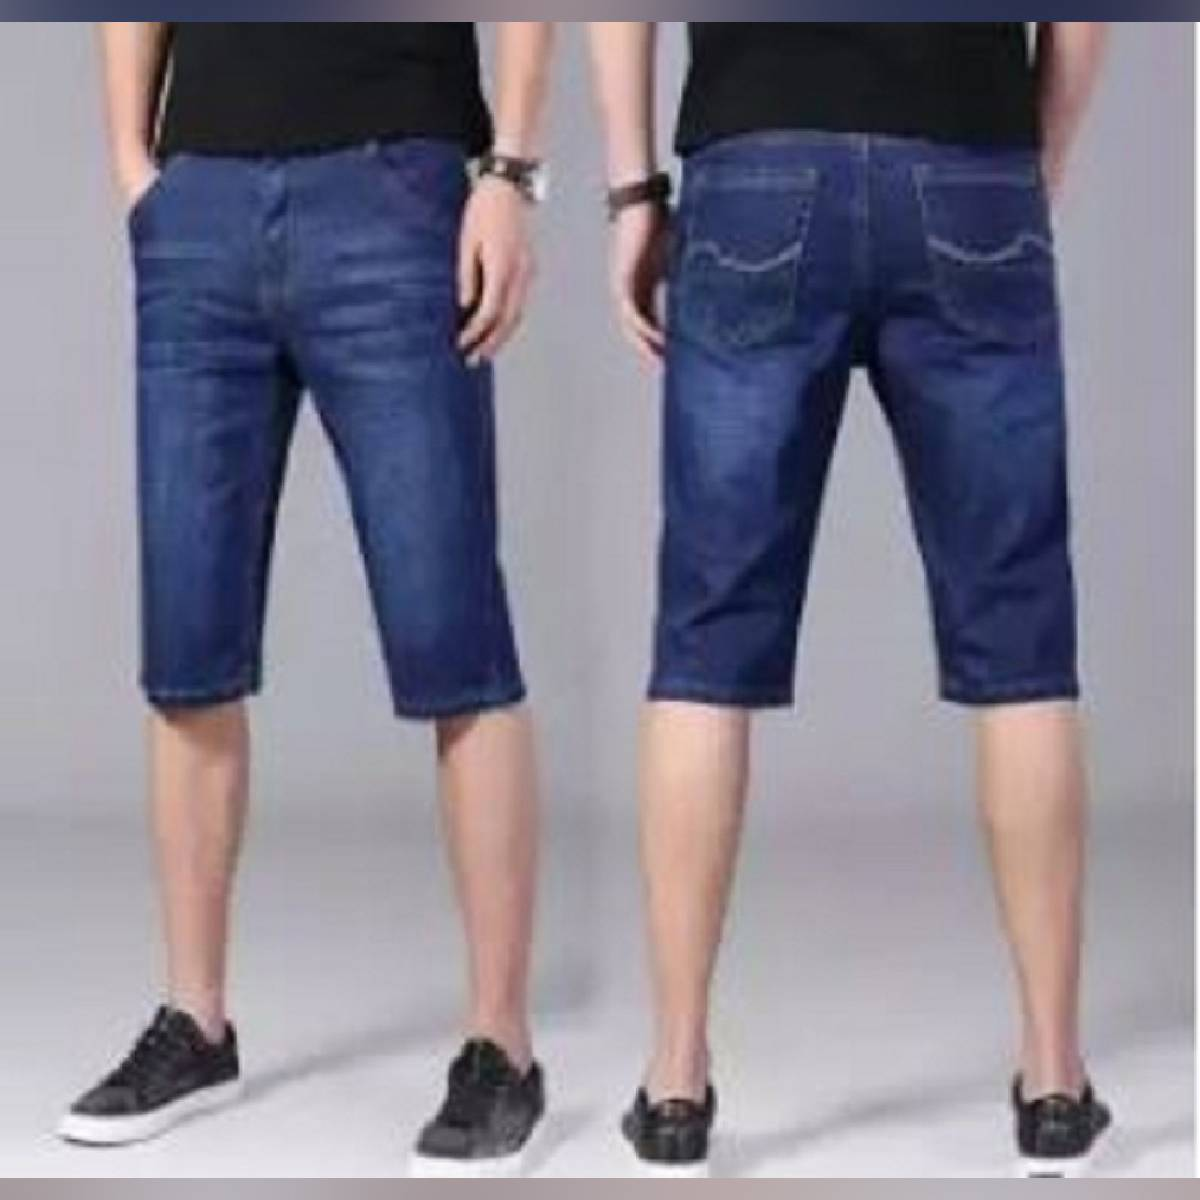 new style denim shorts for man_ summer collection export Quality Denim jeans simple versatile_slim and stylish causal_elastic shorts